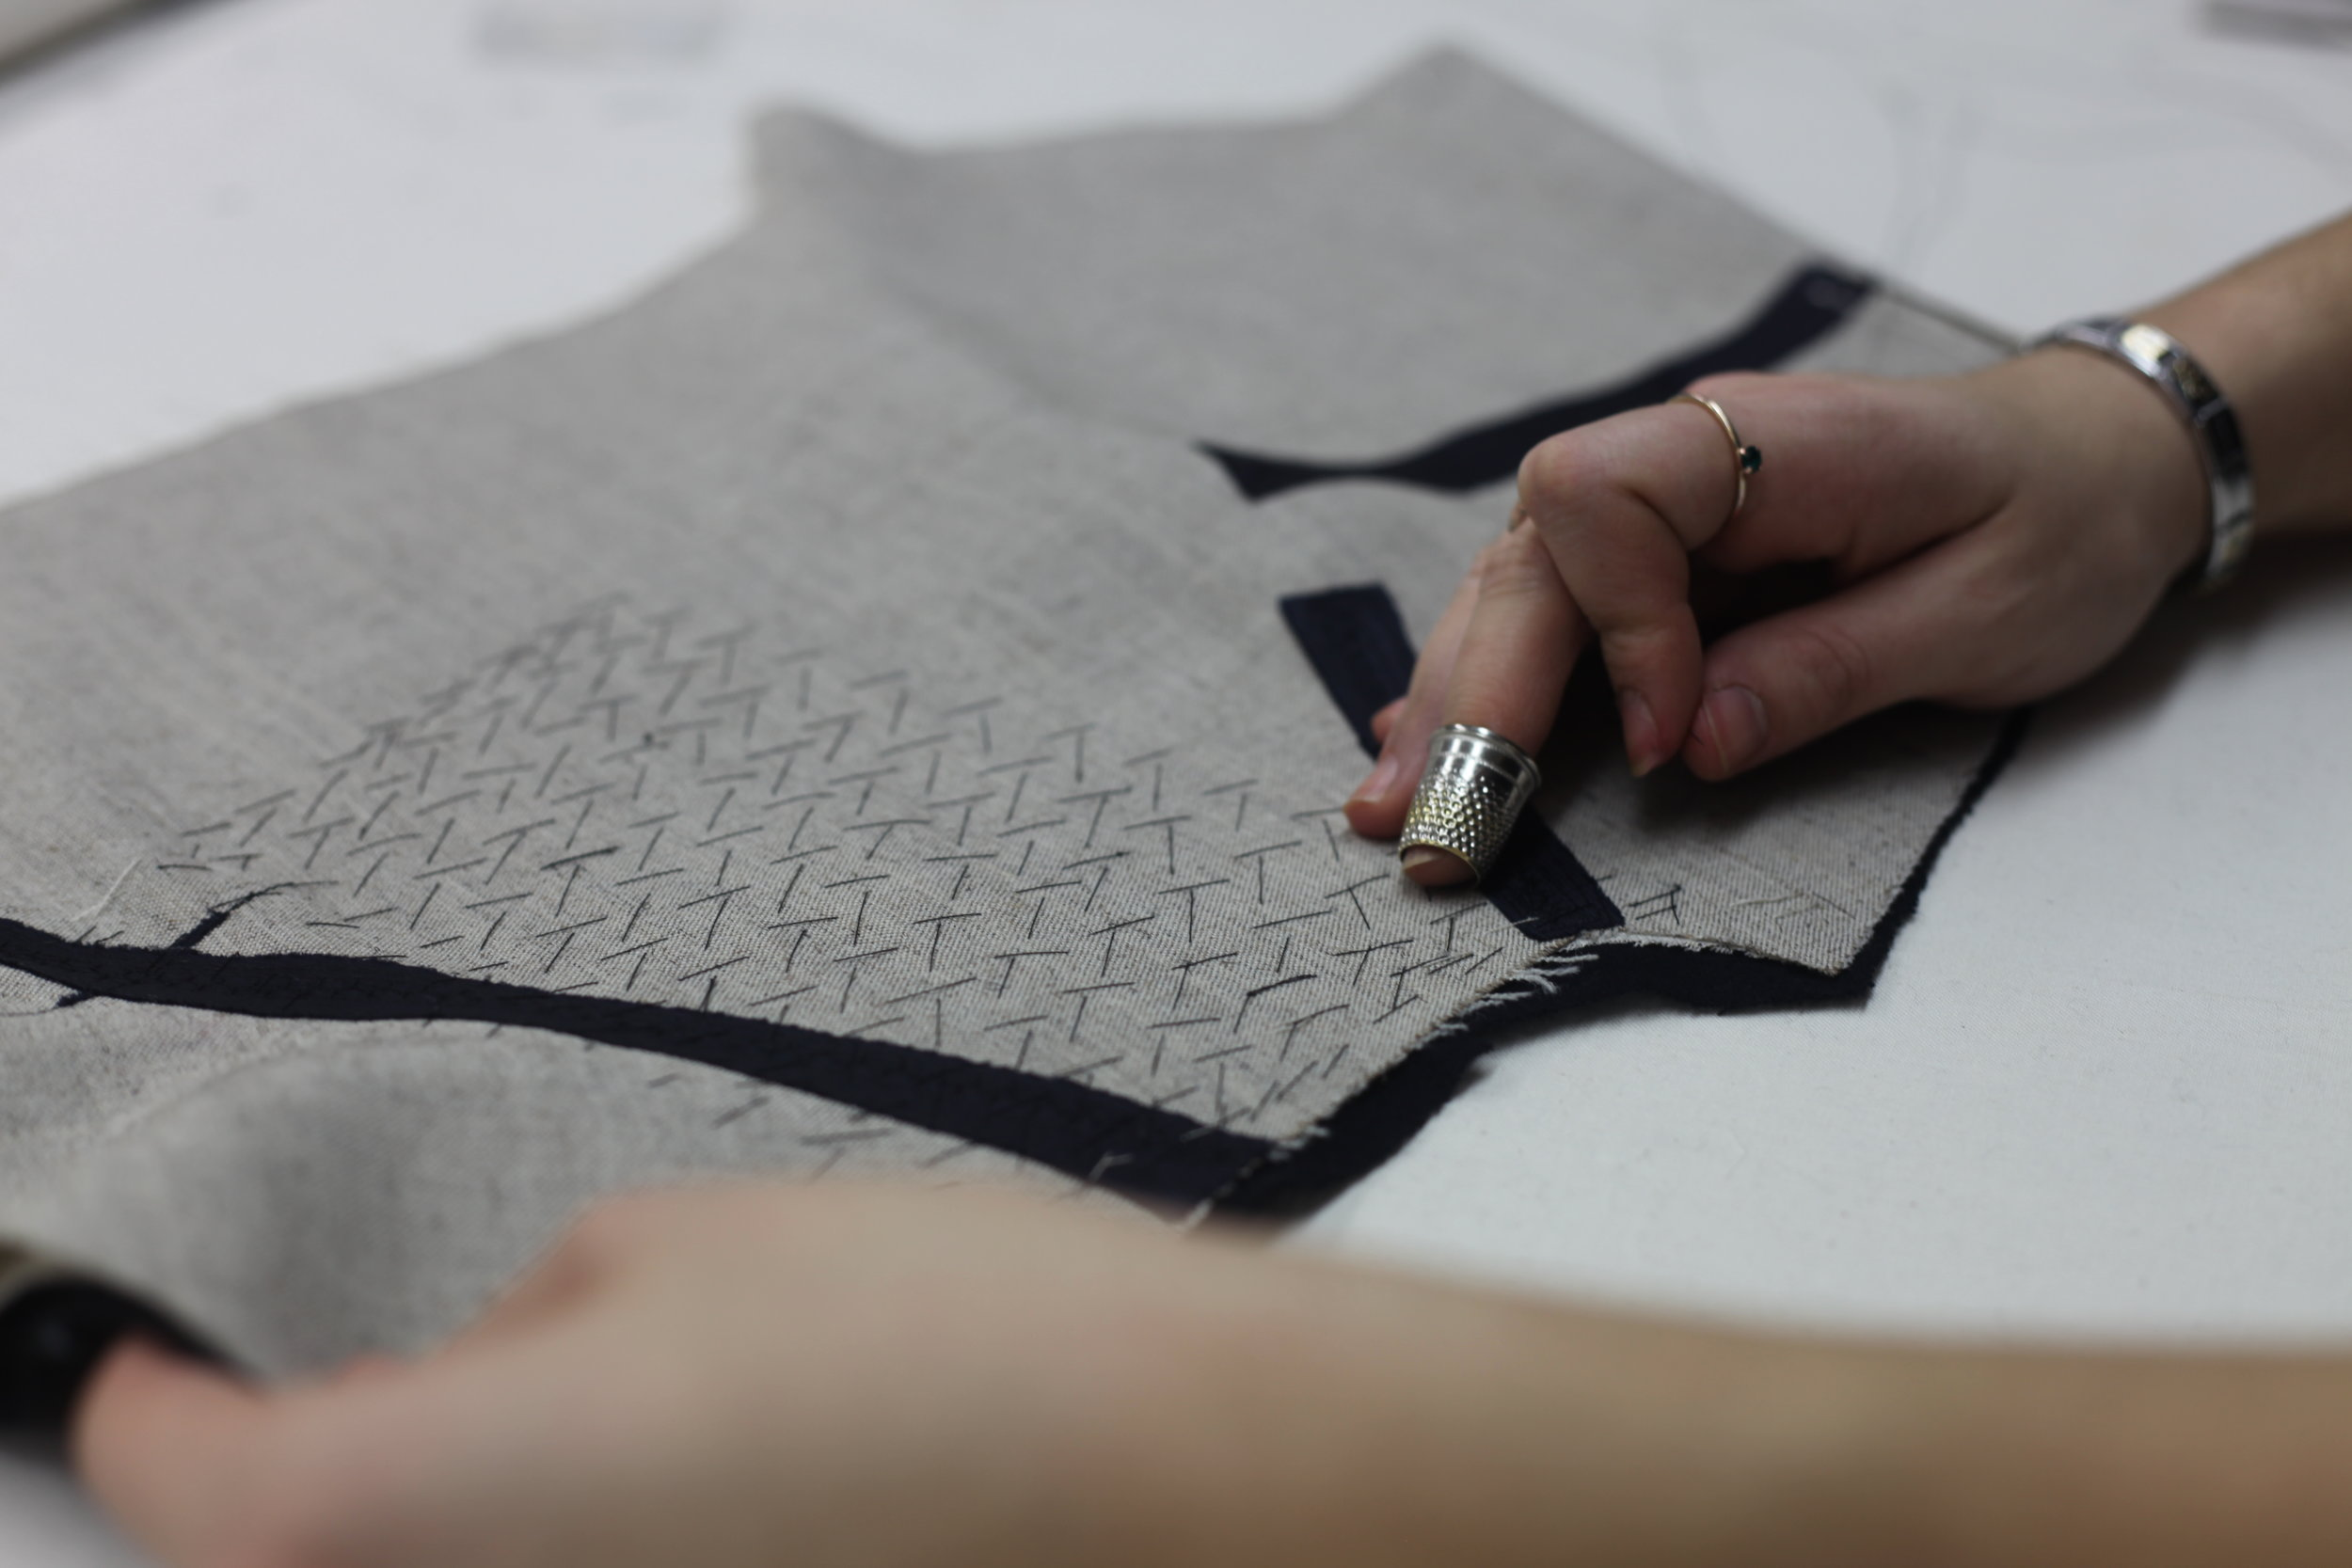 Basting of the garment: in the front of the jacket before moving on to putting the inside and outside pockets, after the stitching of the sides.Interlinings preparation and the laying of the front of the jacket: it represents 600 stitches by hand. The front of the jacket is the suit's most sensitive part. -